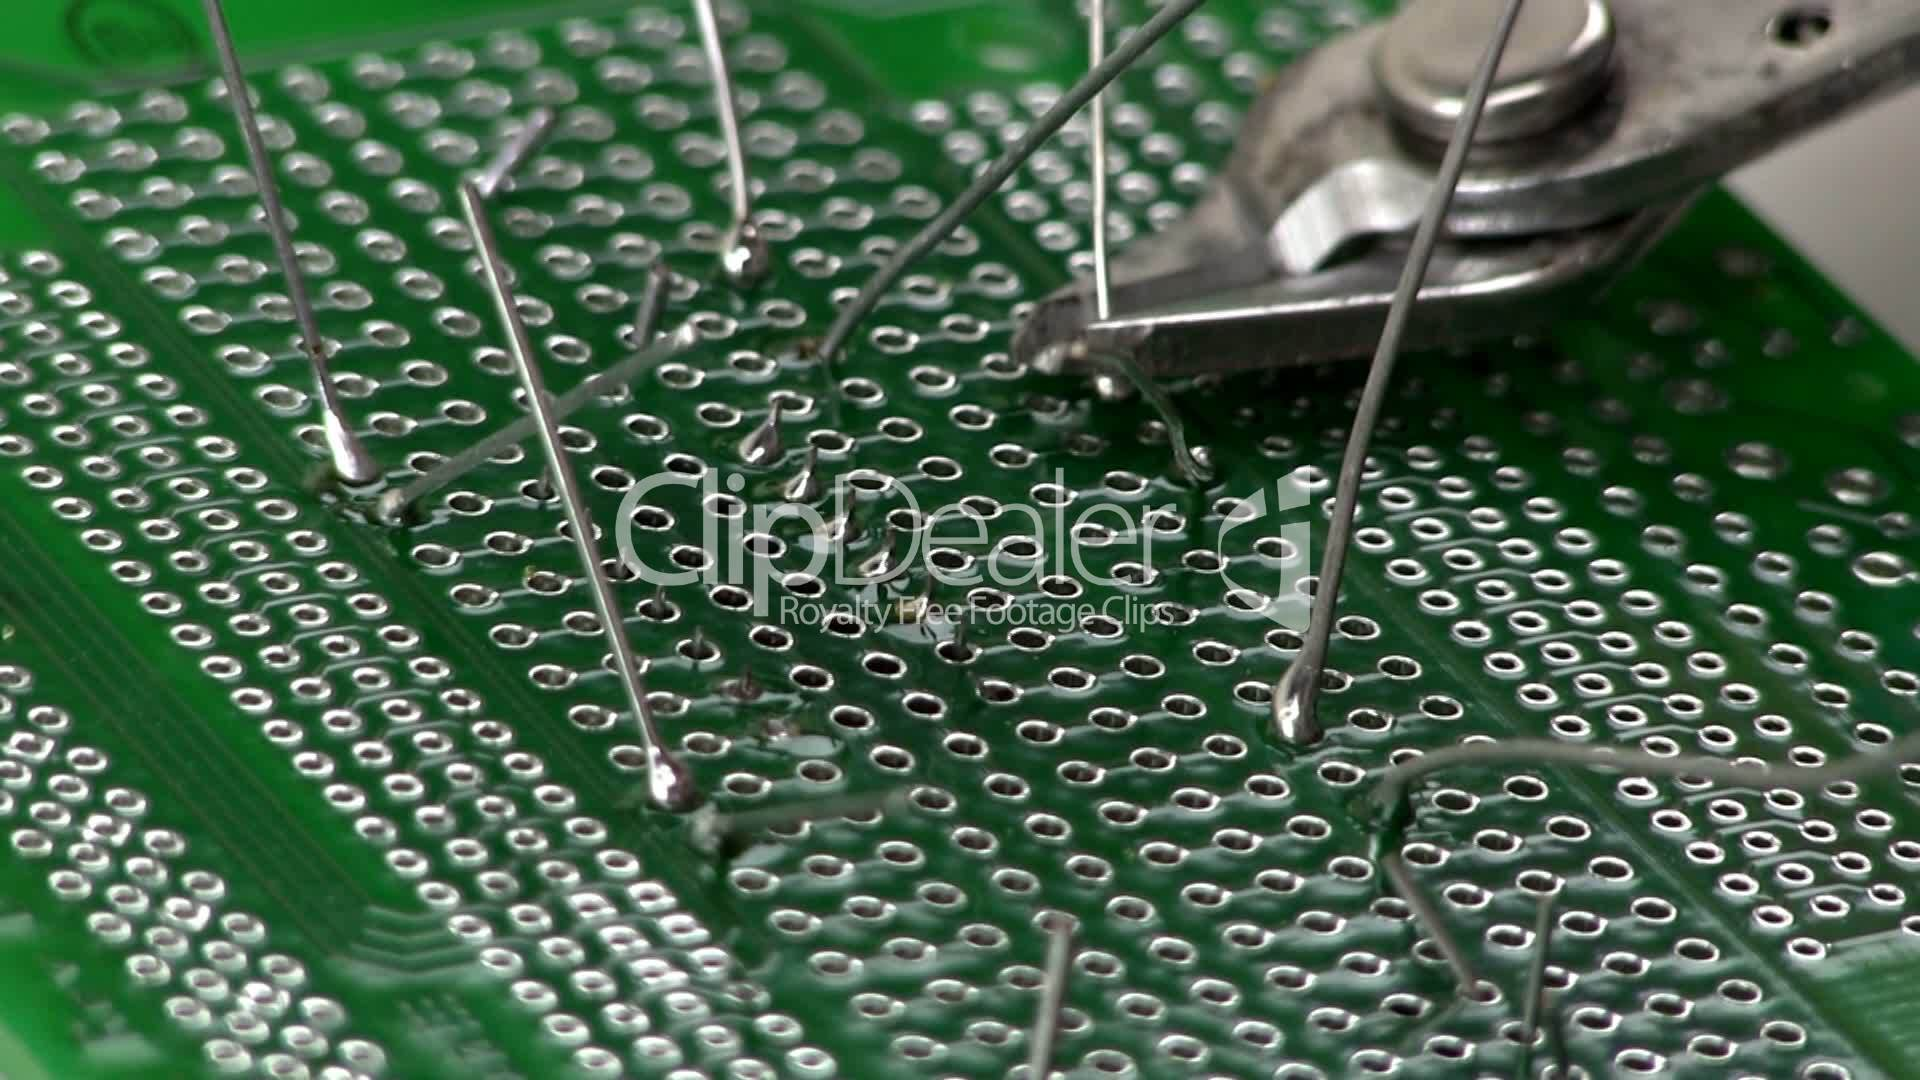 Lead Trimmer Circuit Board Question About Wiring Diagram Design Schematics Gerber Data Sandwichpcbwith Trimming With Cutters Royalty Free Video And Rh Us Clipdealer Com Hair Beard